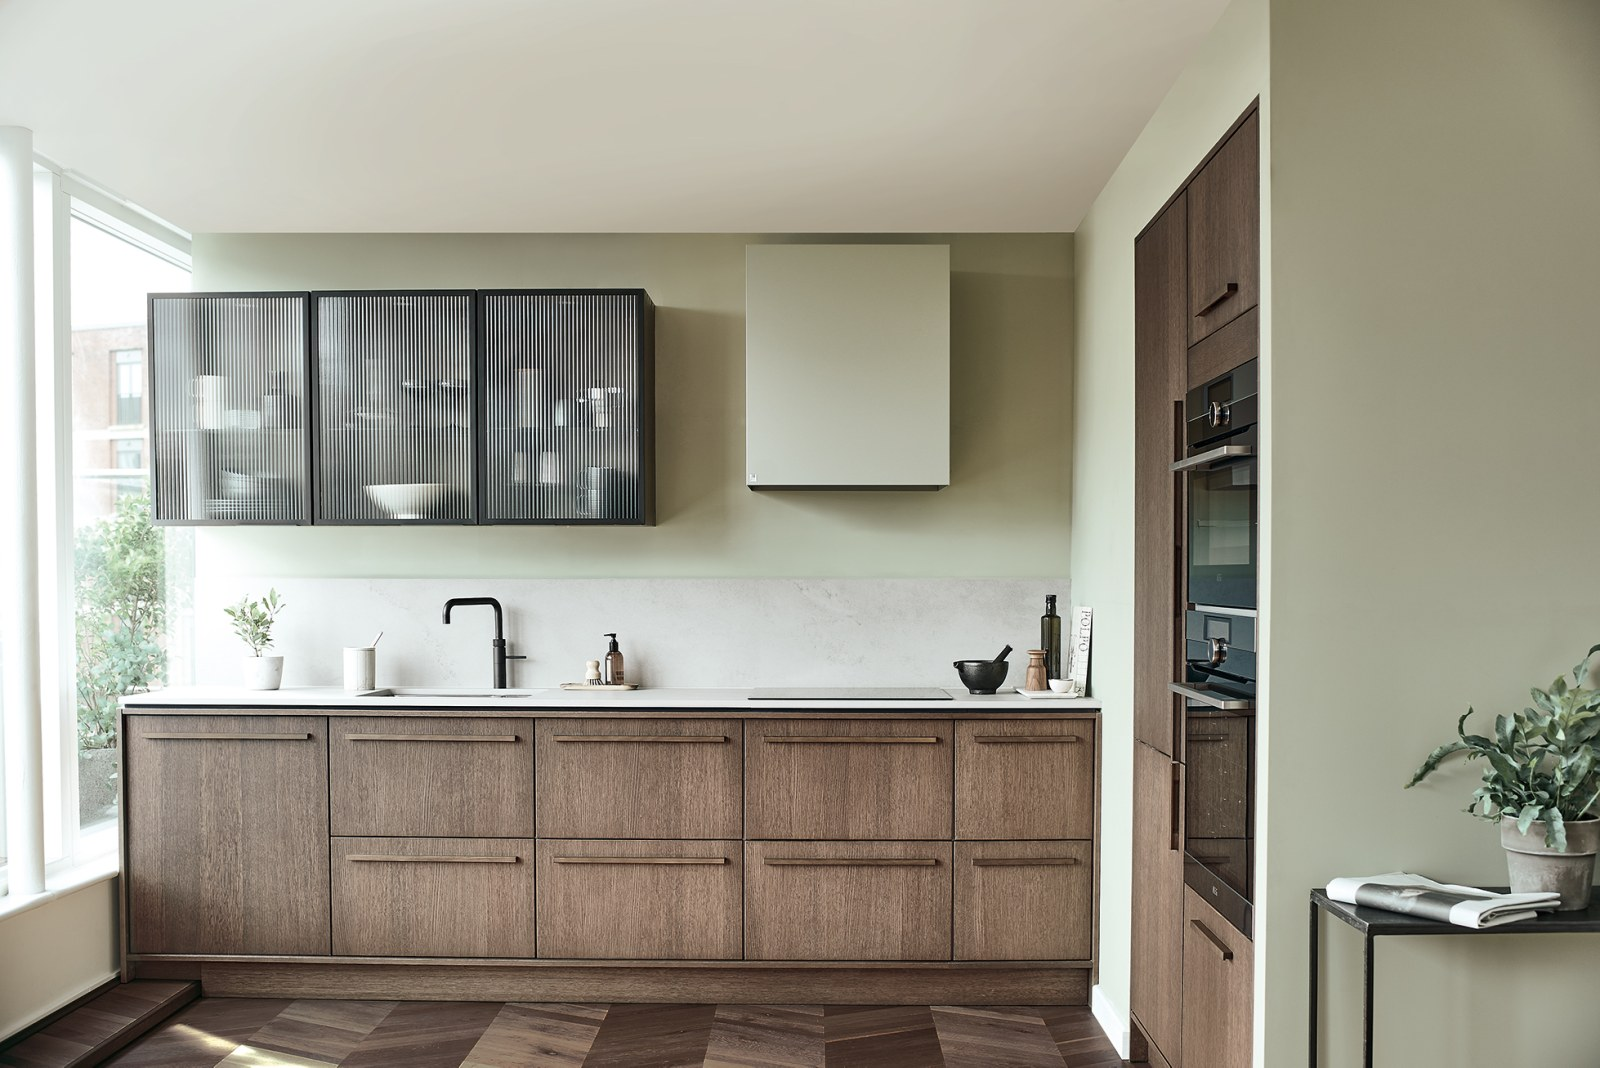 Magnet Kitchens 2021 Nordic Nature range with Fluted oak doors and Integra Hoxton Pebble cabinets with Dekton Aeri worktop.